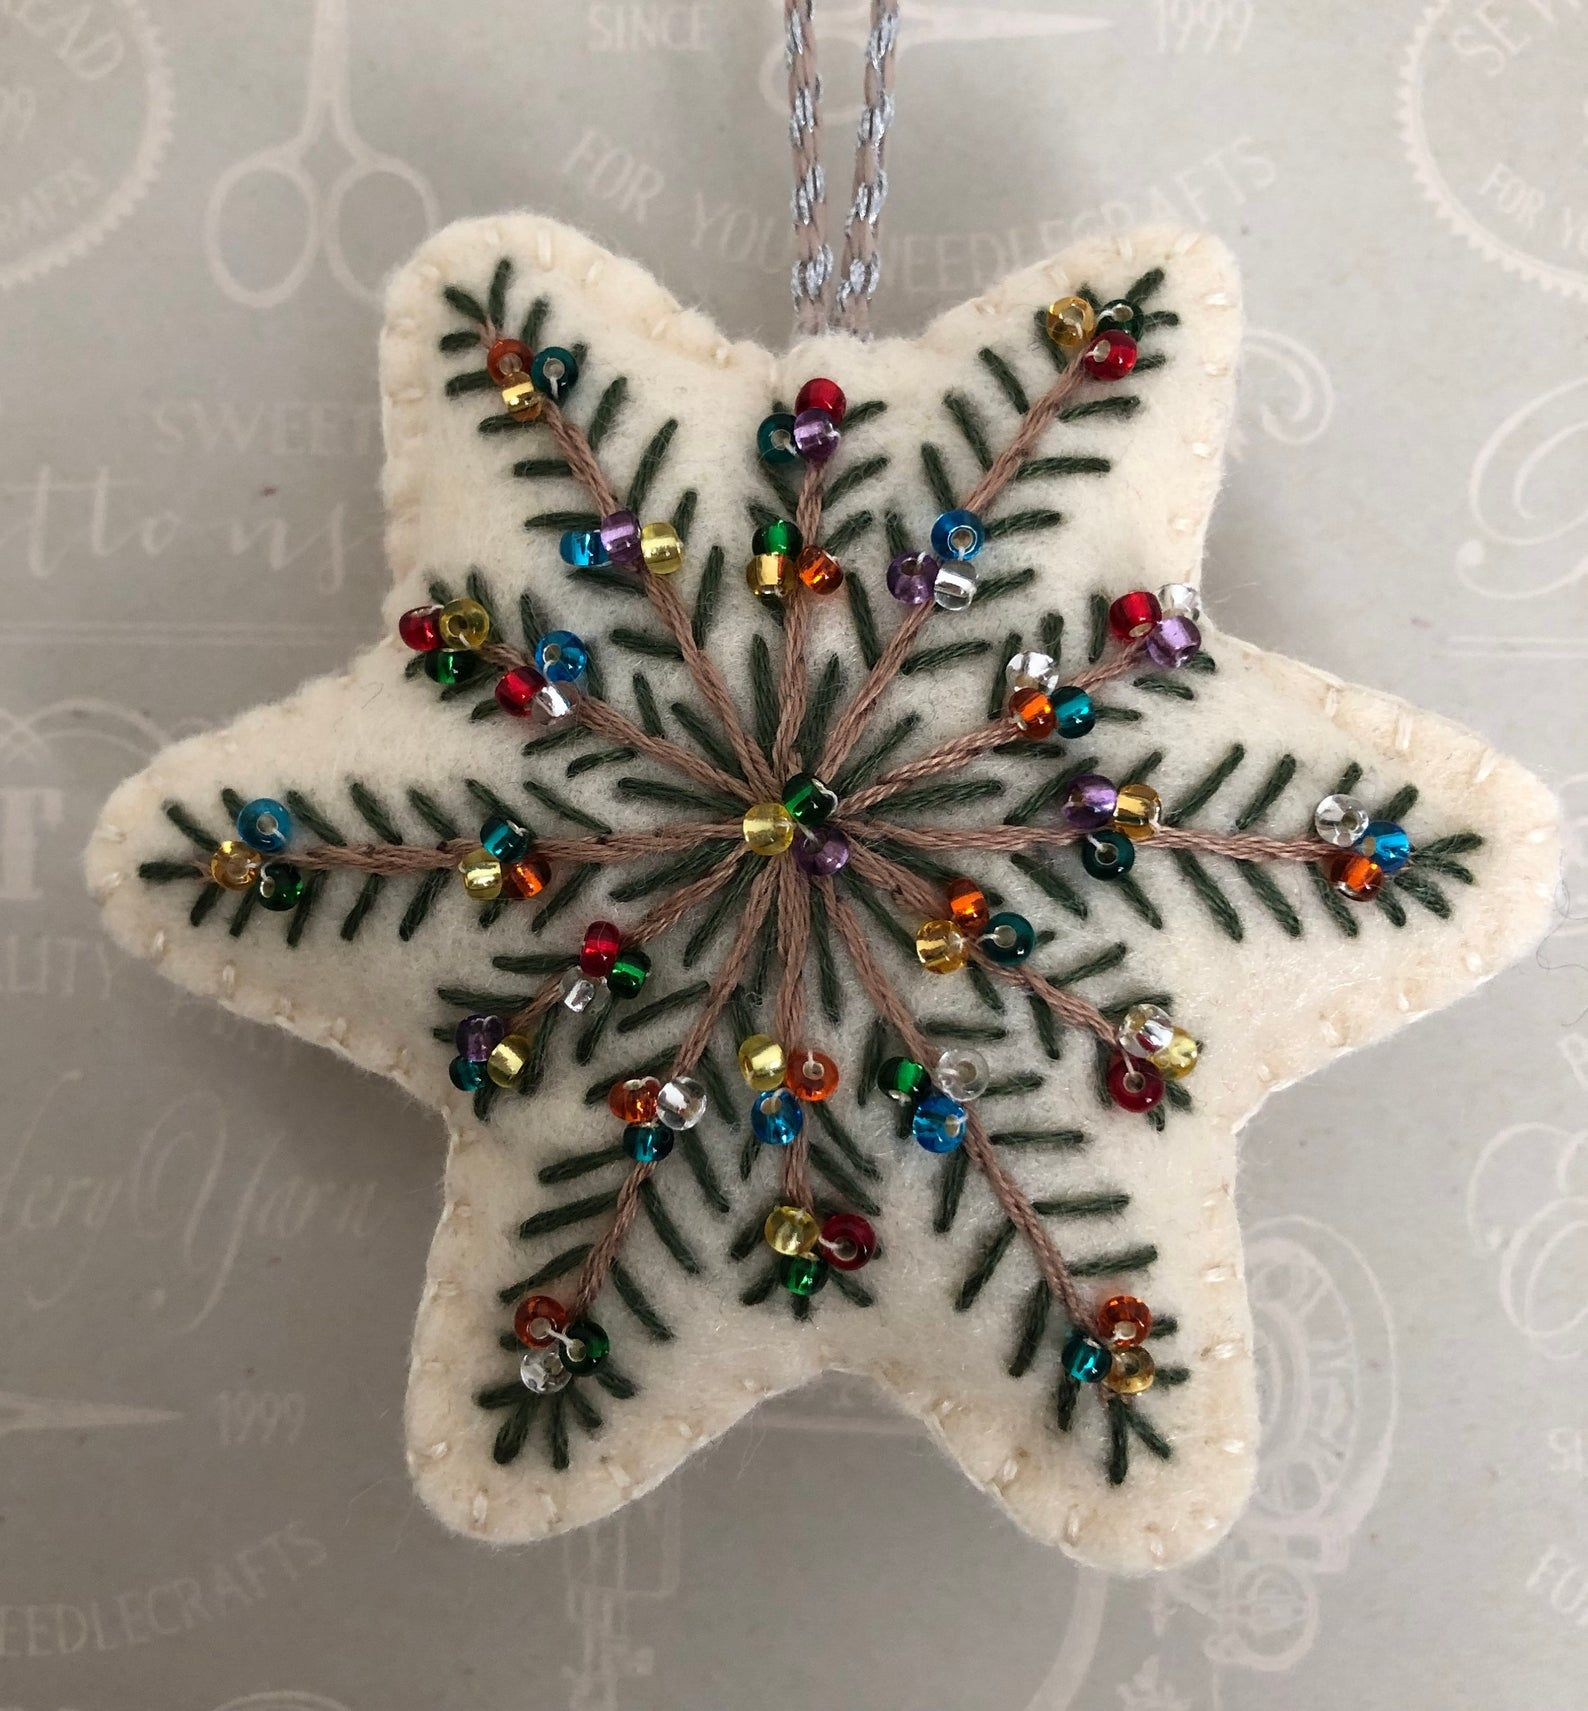 Handmade Felt Star Christmas Ornament Embroidered With Etsy Diy Felt Christmas Ornaments Felt Crafts Christmas Felt Christmas Ornaments